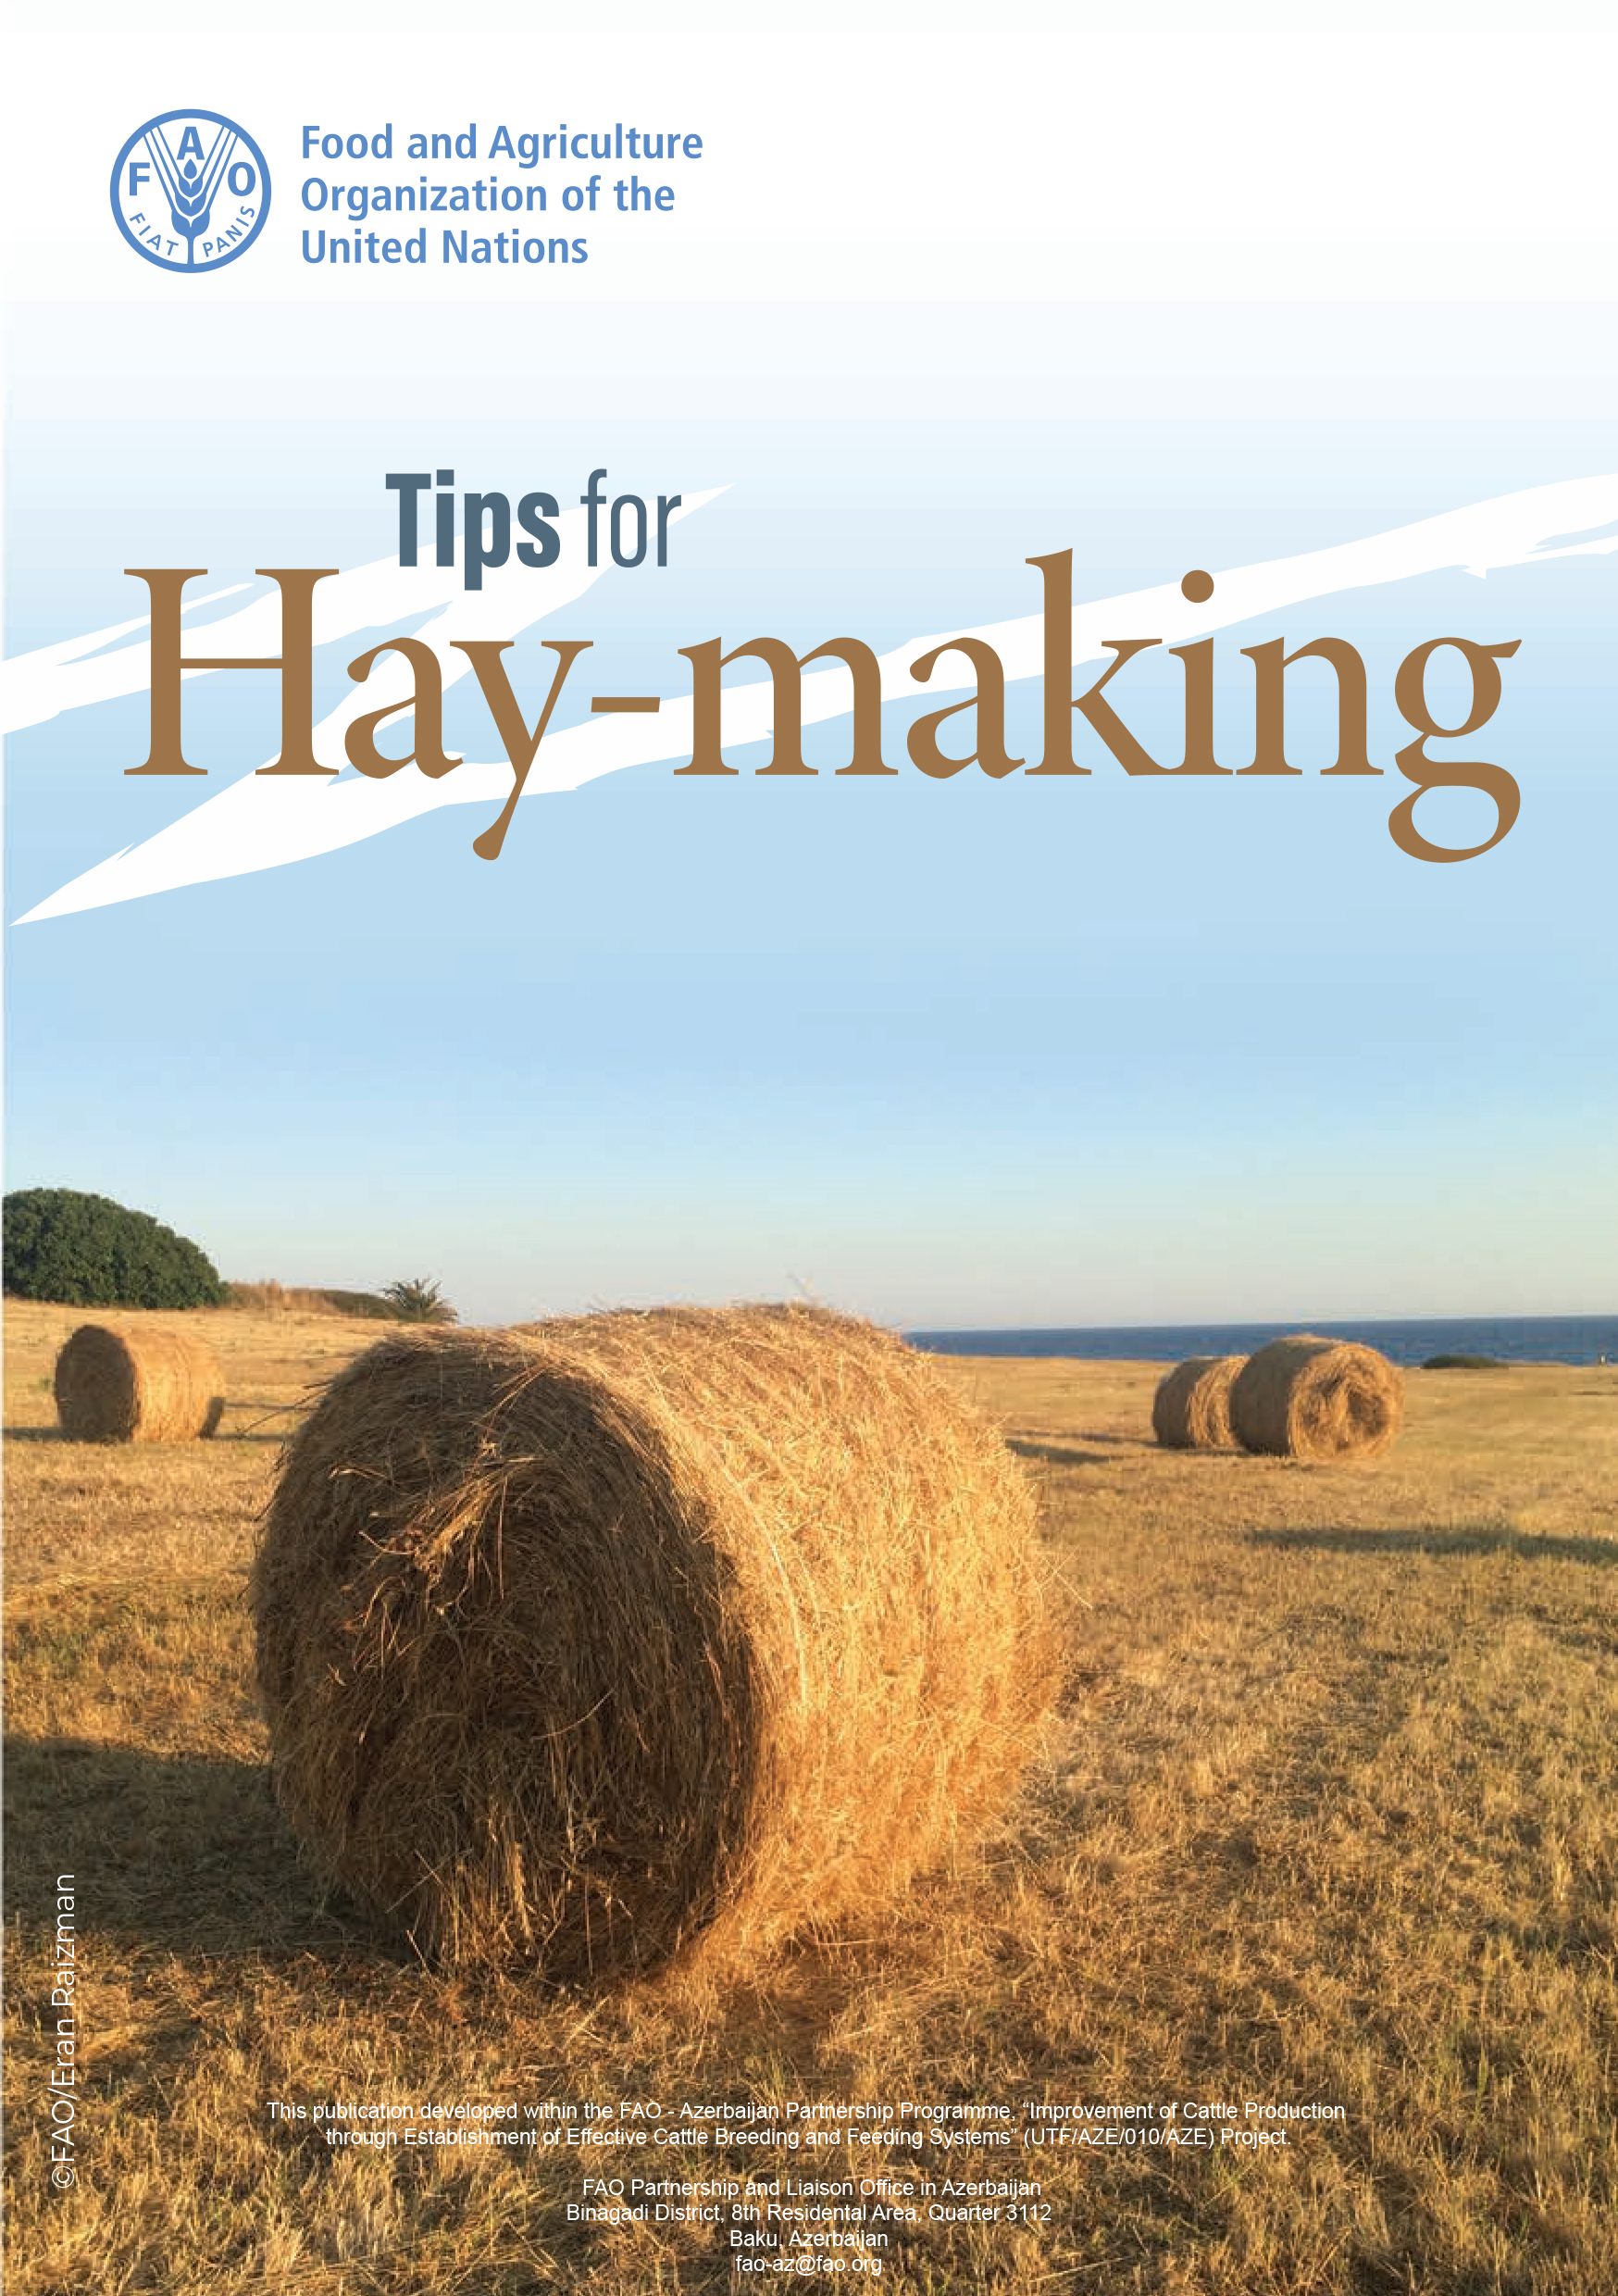 Tips for Hay-making